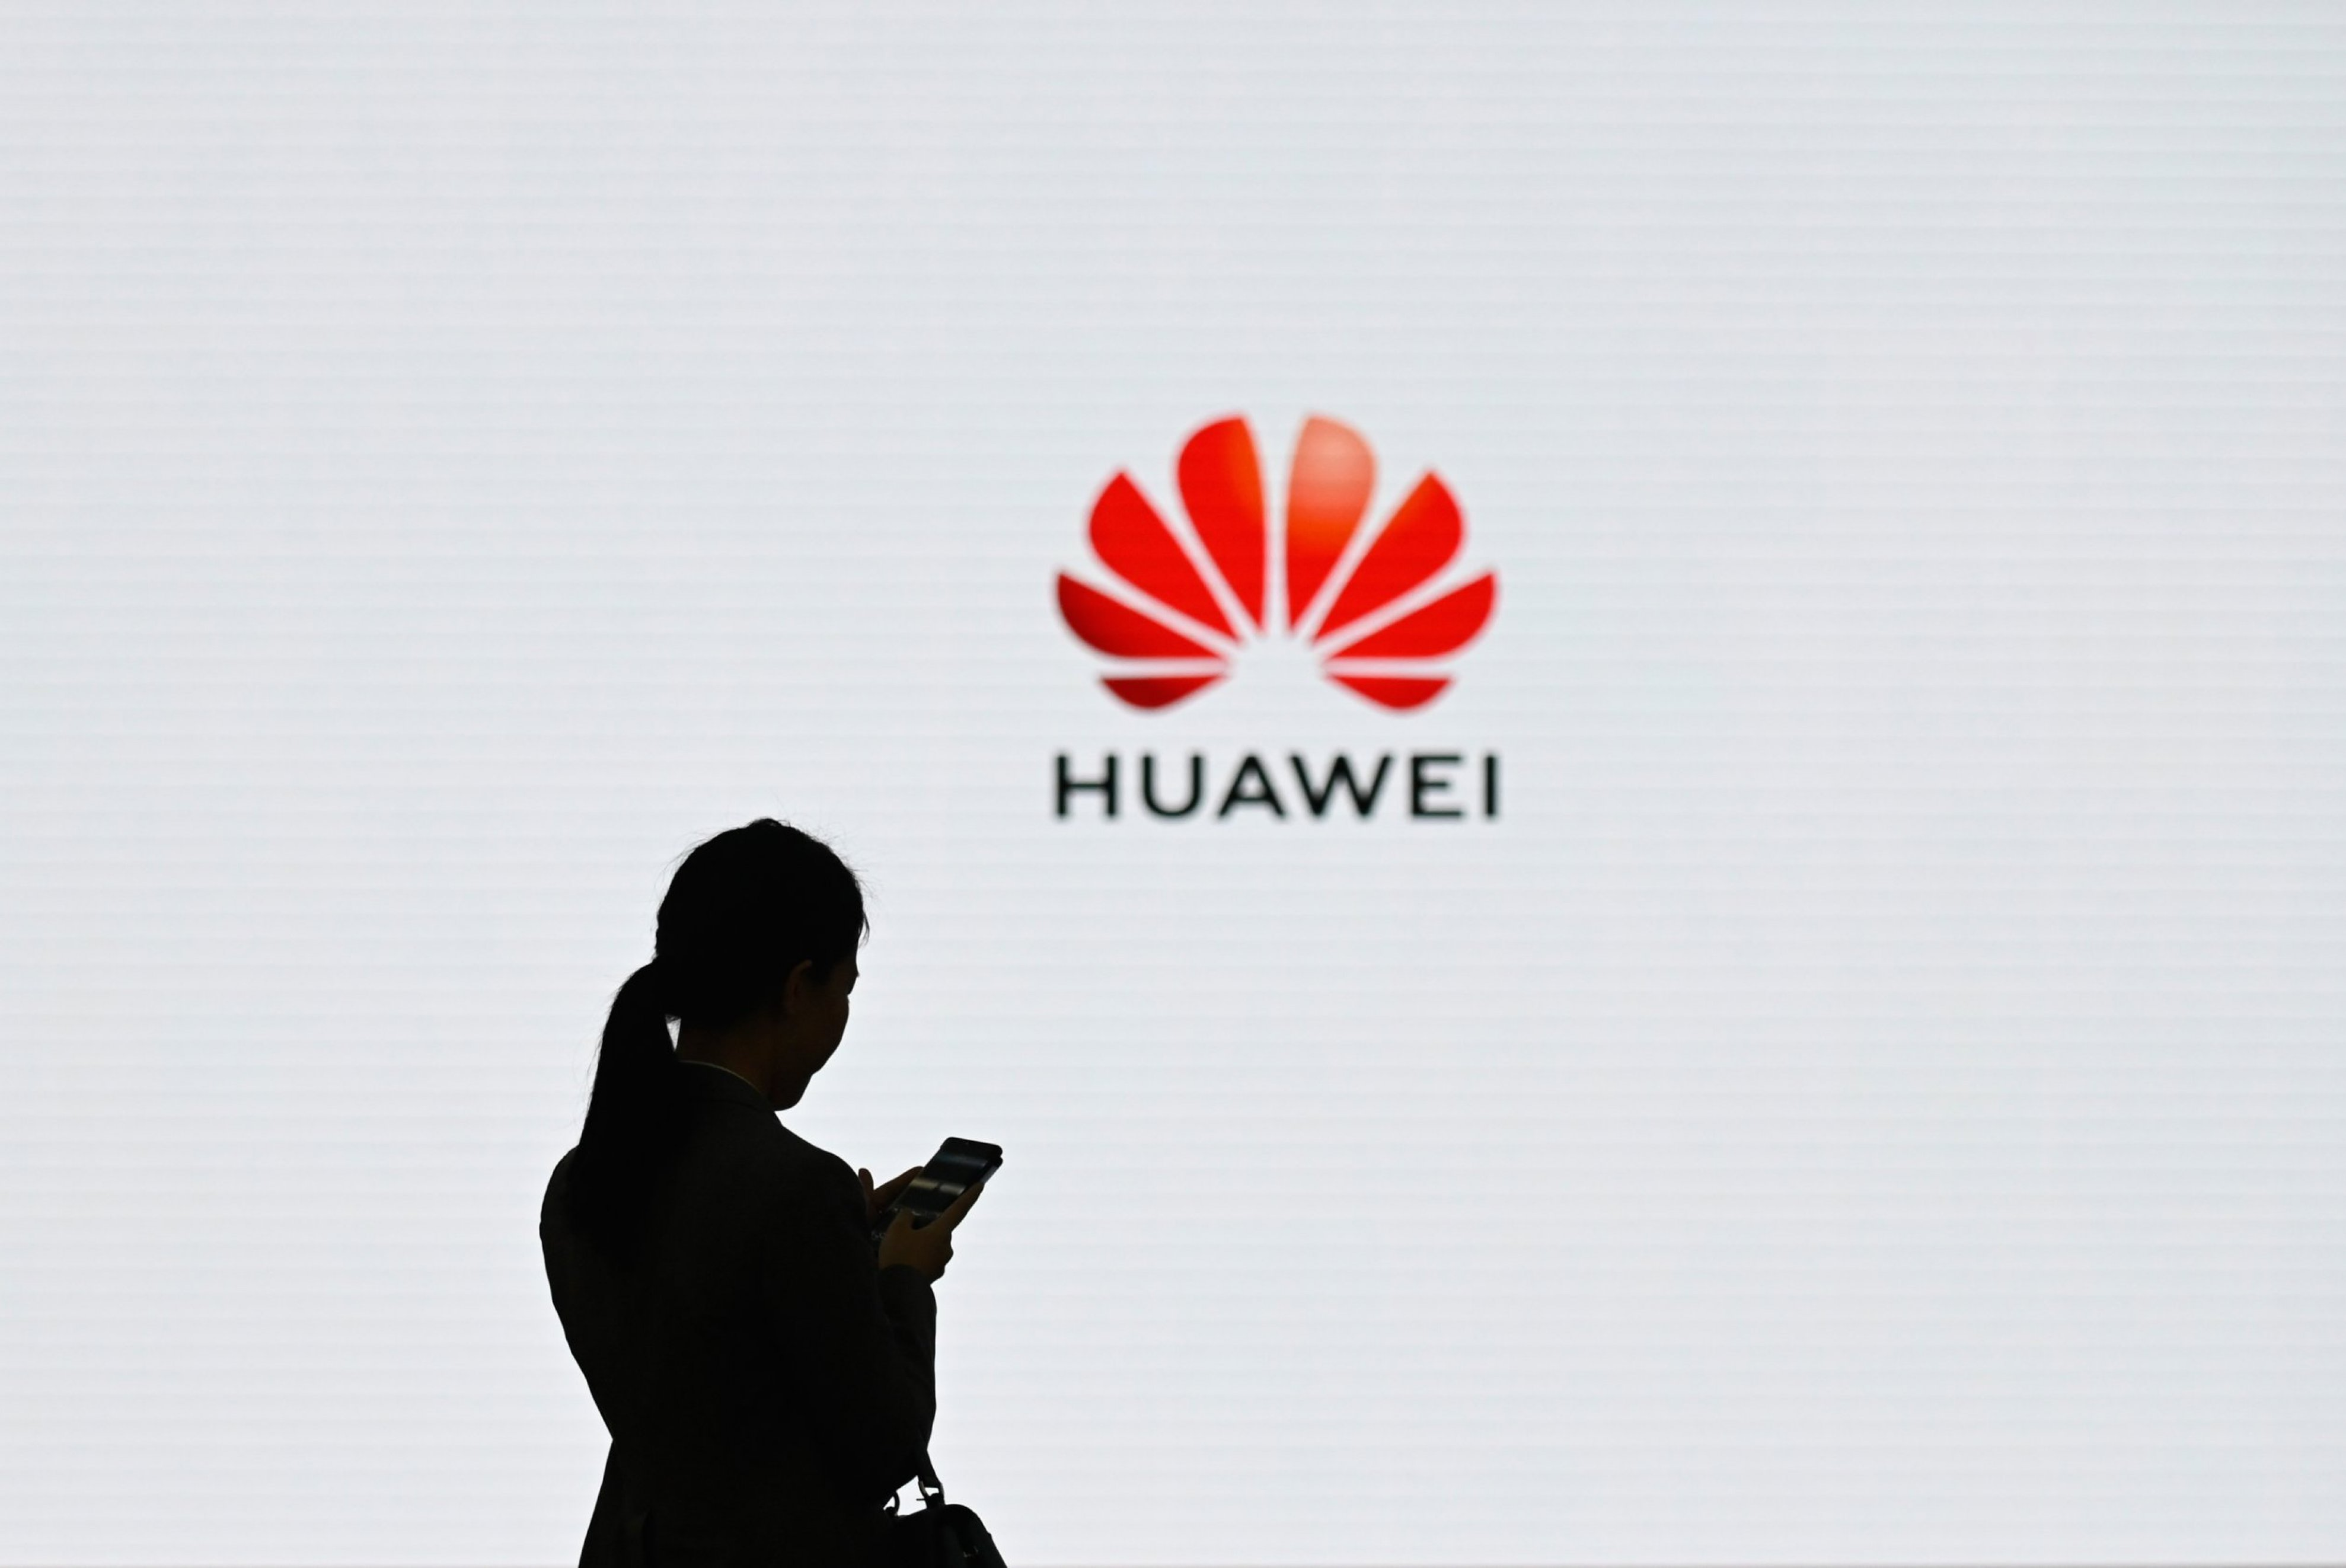 Google Huawei Ban: Will Users of Chinese Phones Lose Access to Gmail